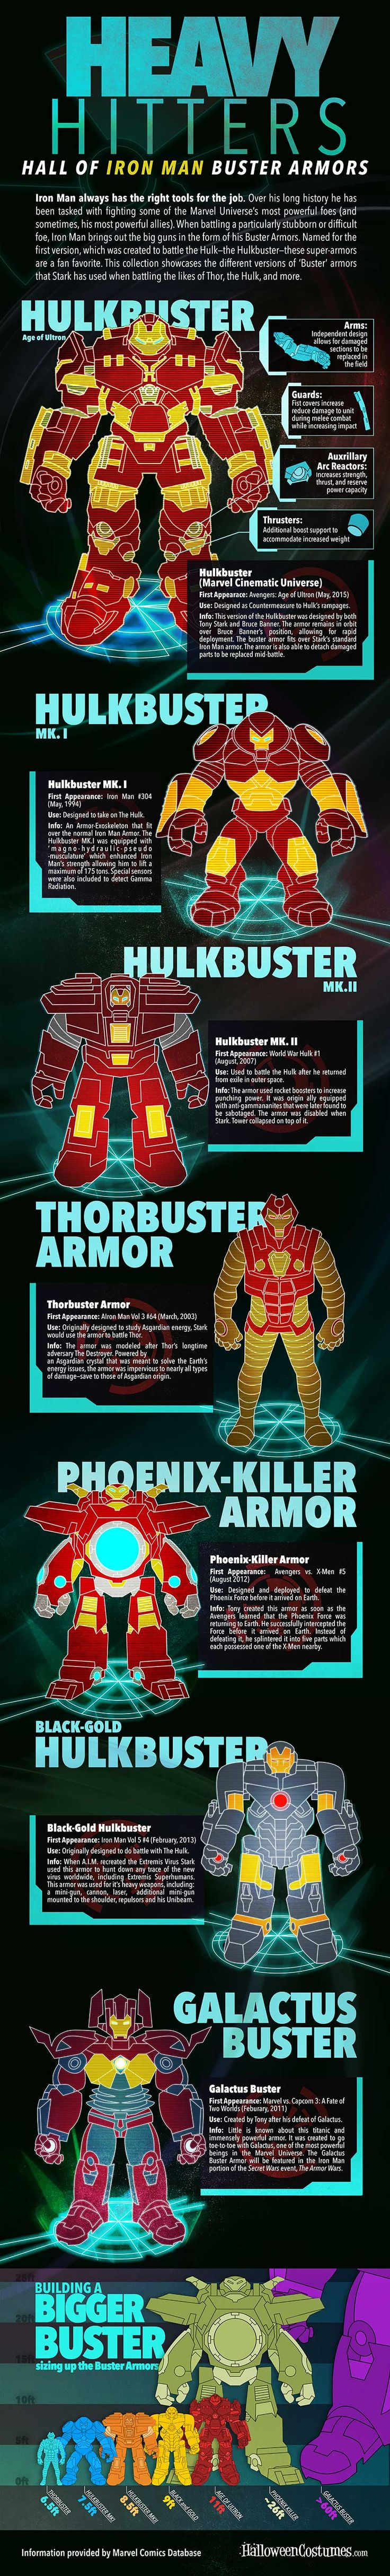 Iron Man Heavy Hitters Infographic